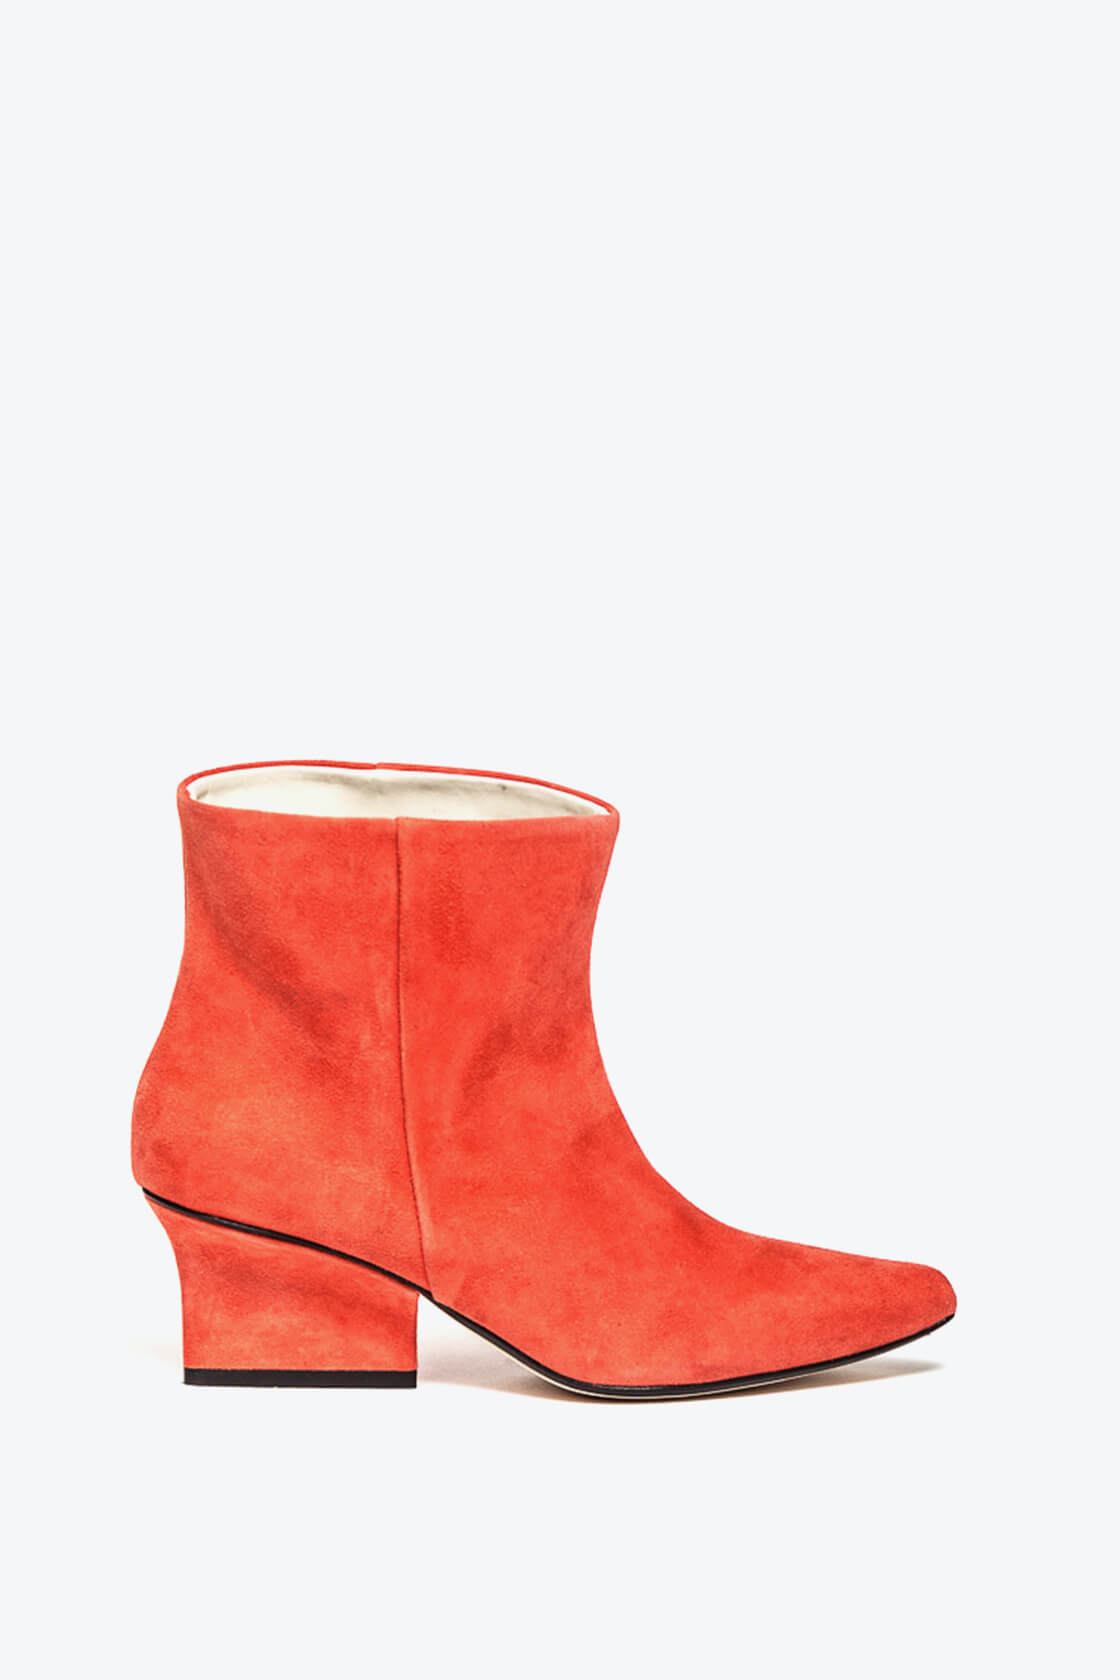 EJK0000043 Denis ankle boots raspberry 1